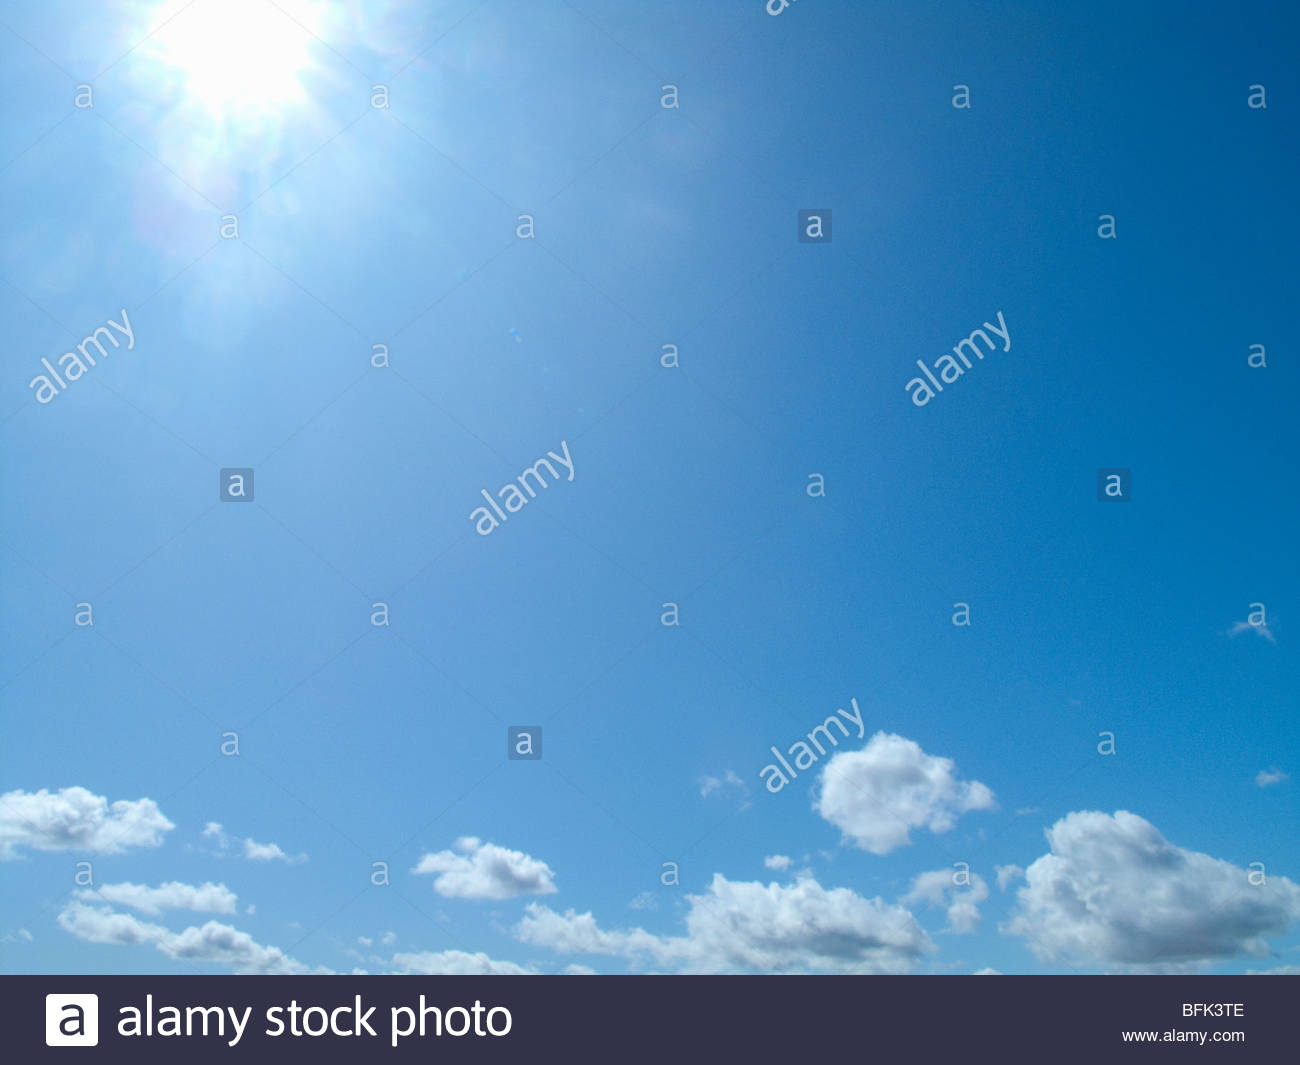 sun shining in blue sky with clouds stock photo 26850334 alamy